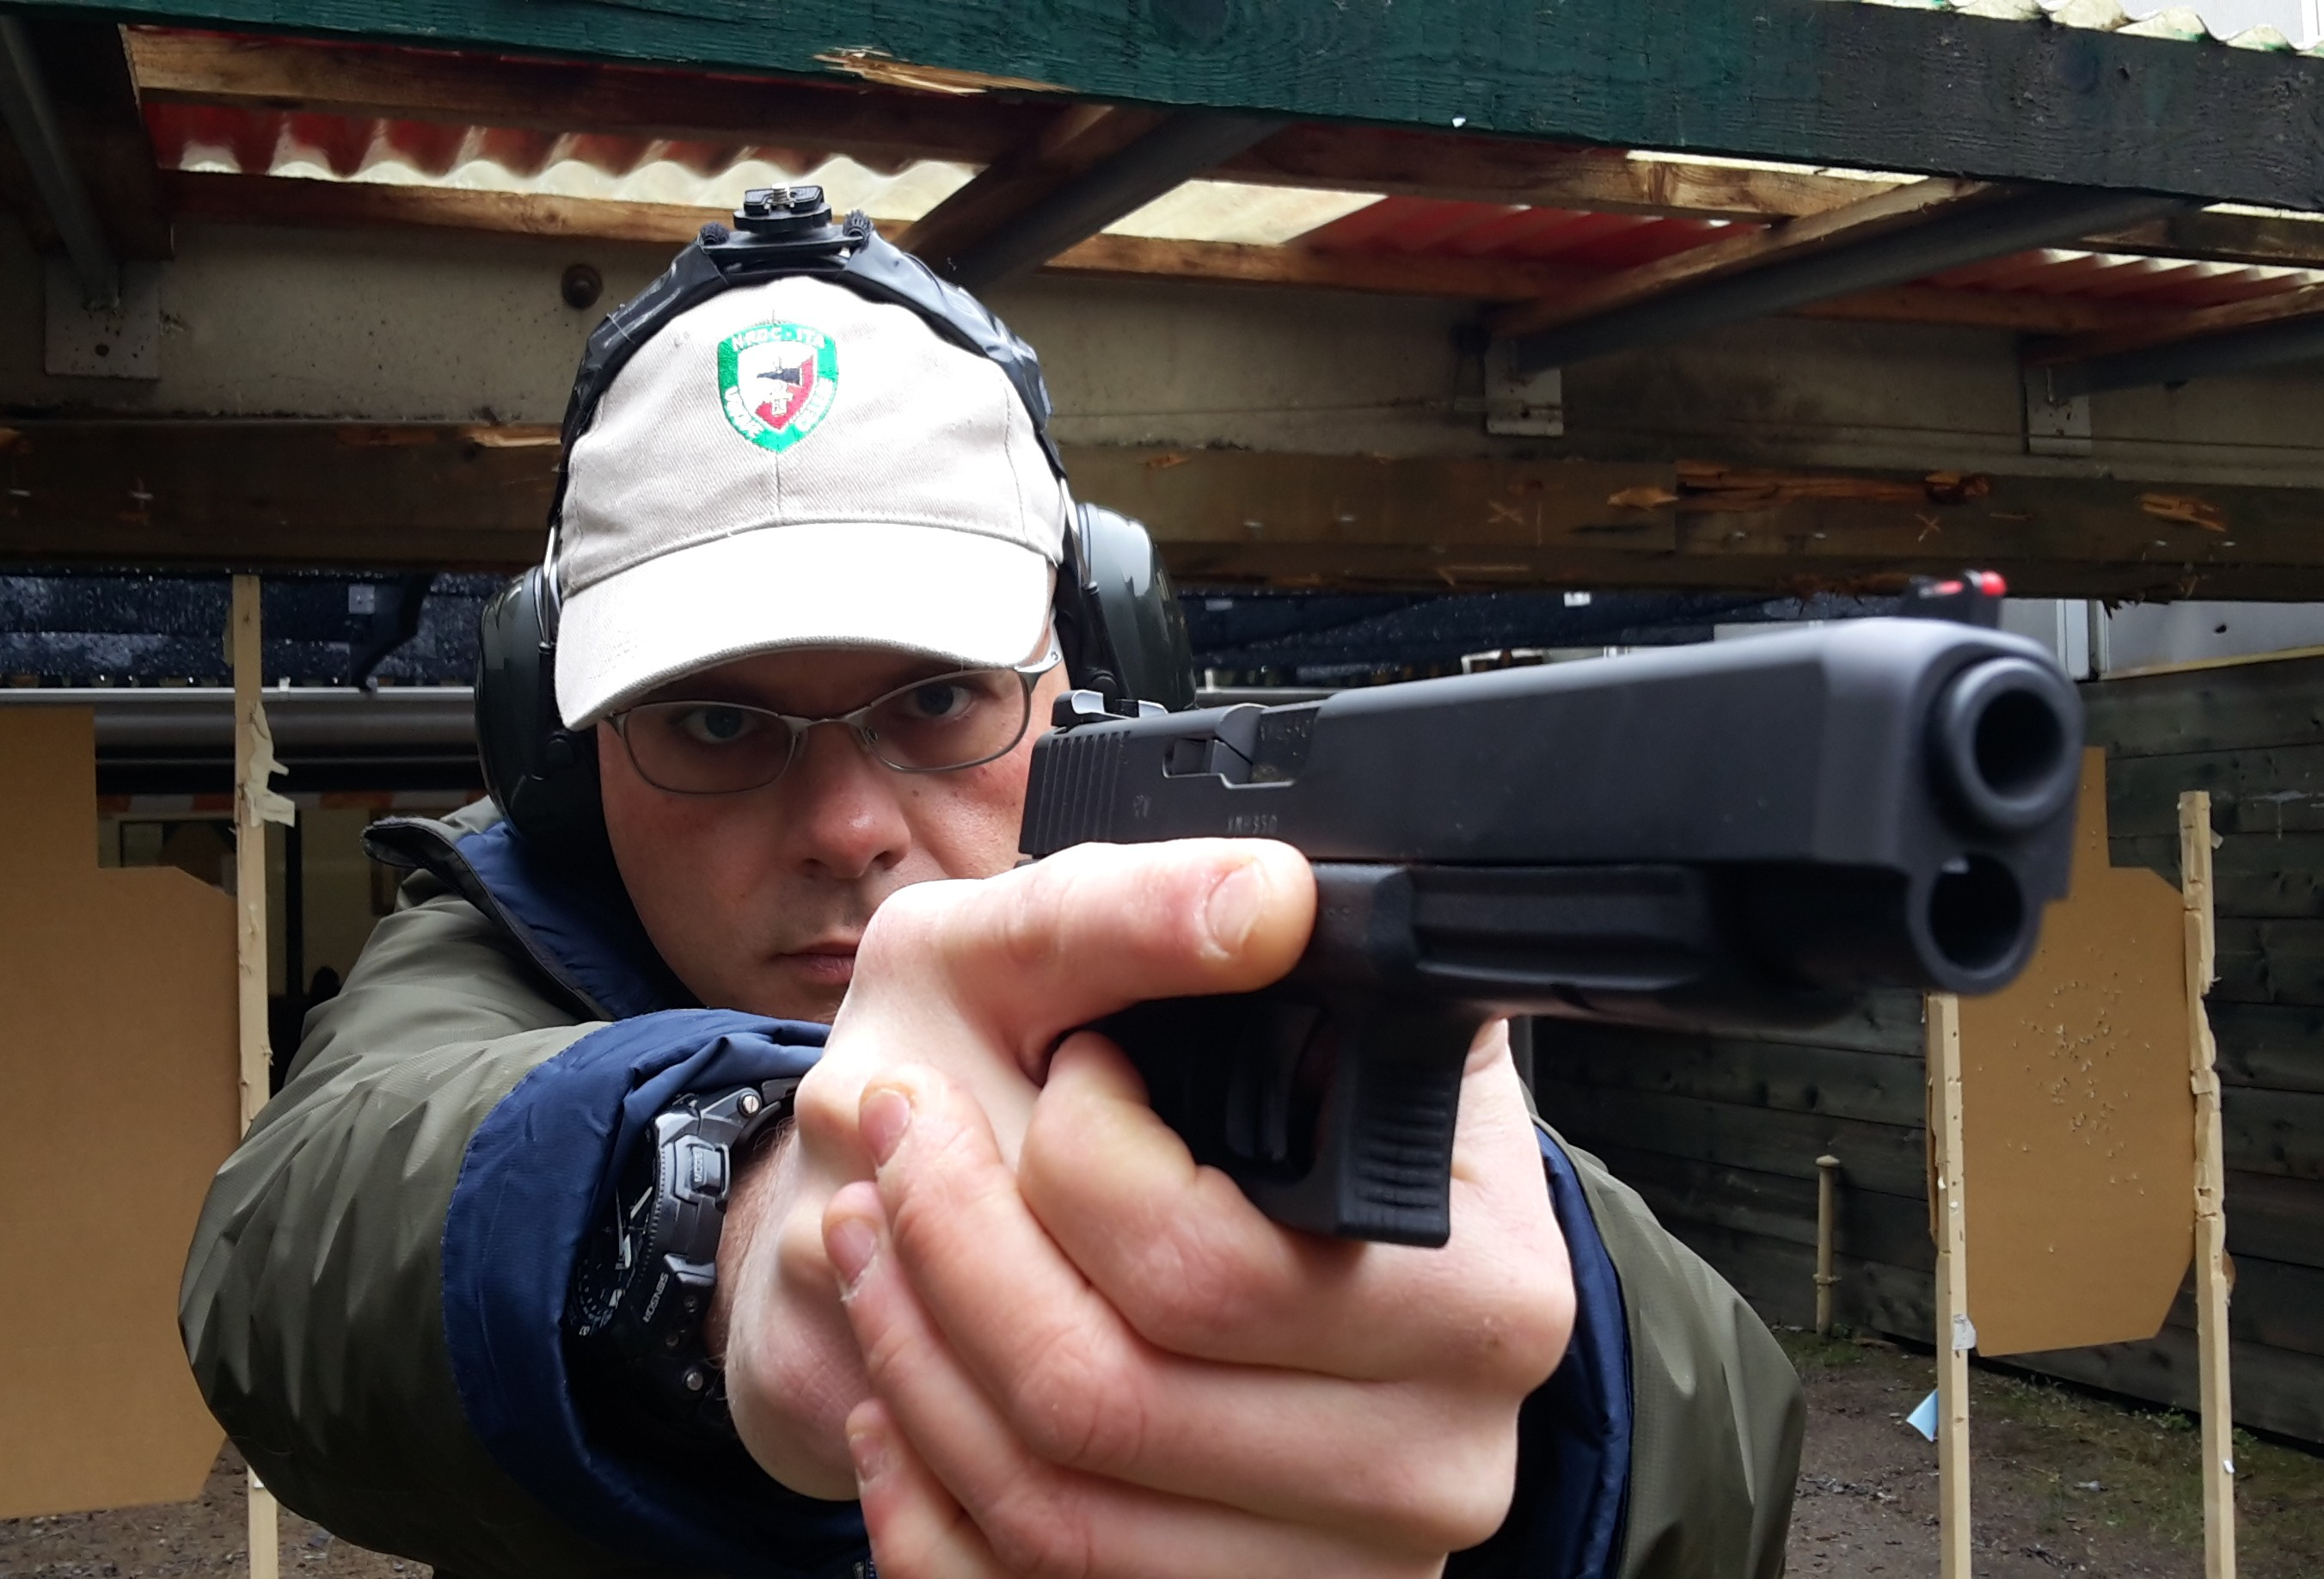 9th September - NRDC-ITA Shooting Club: 2 new members.